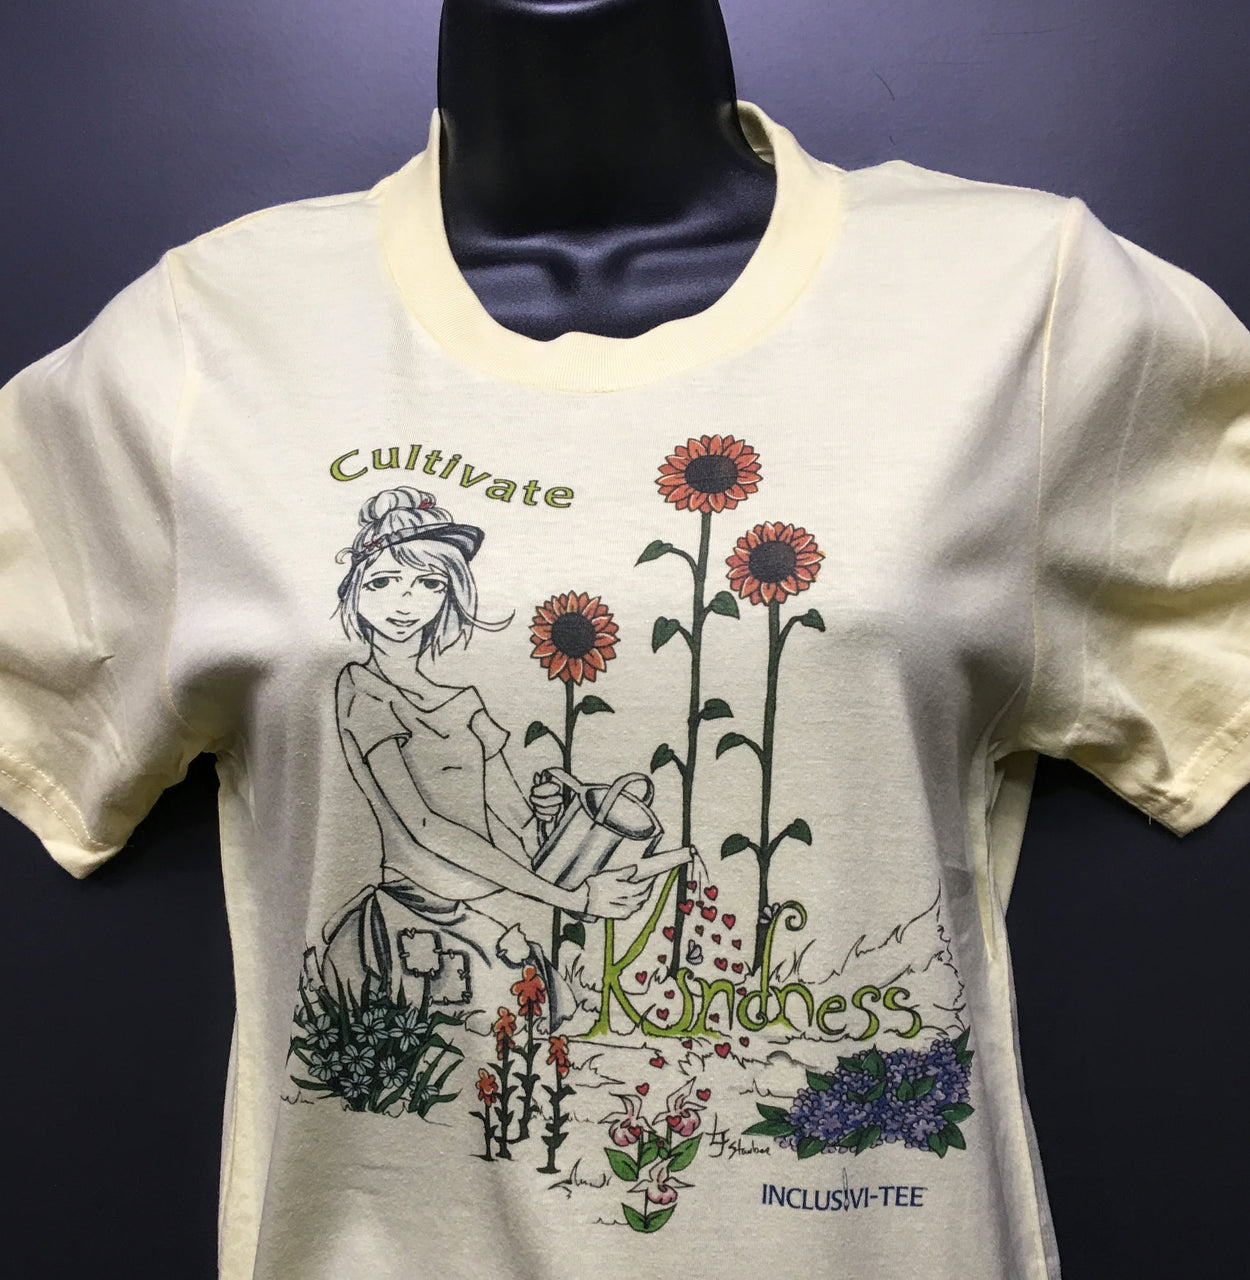 Cultivate Kindness T-Shirt